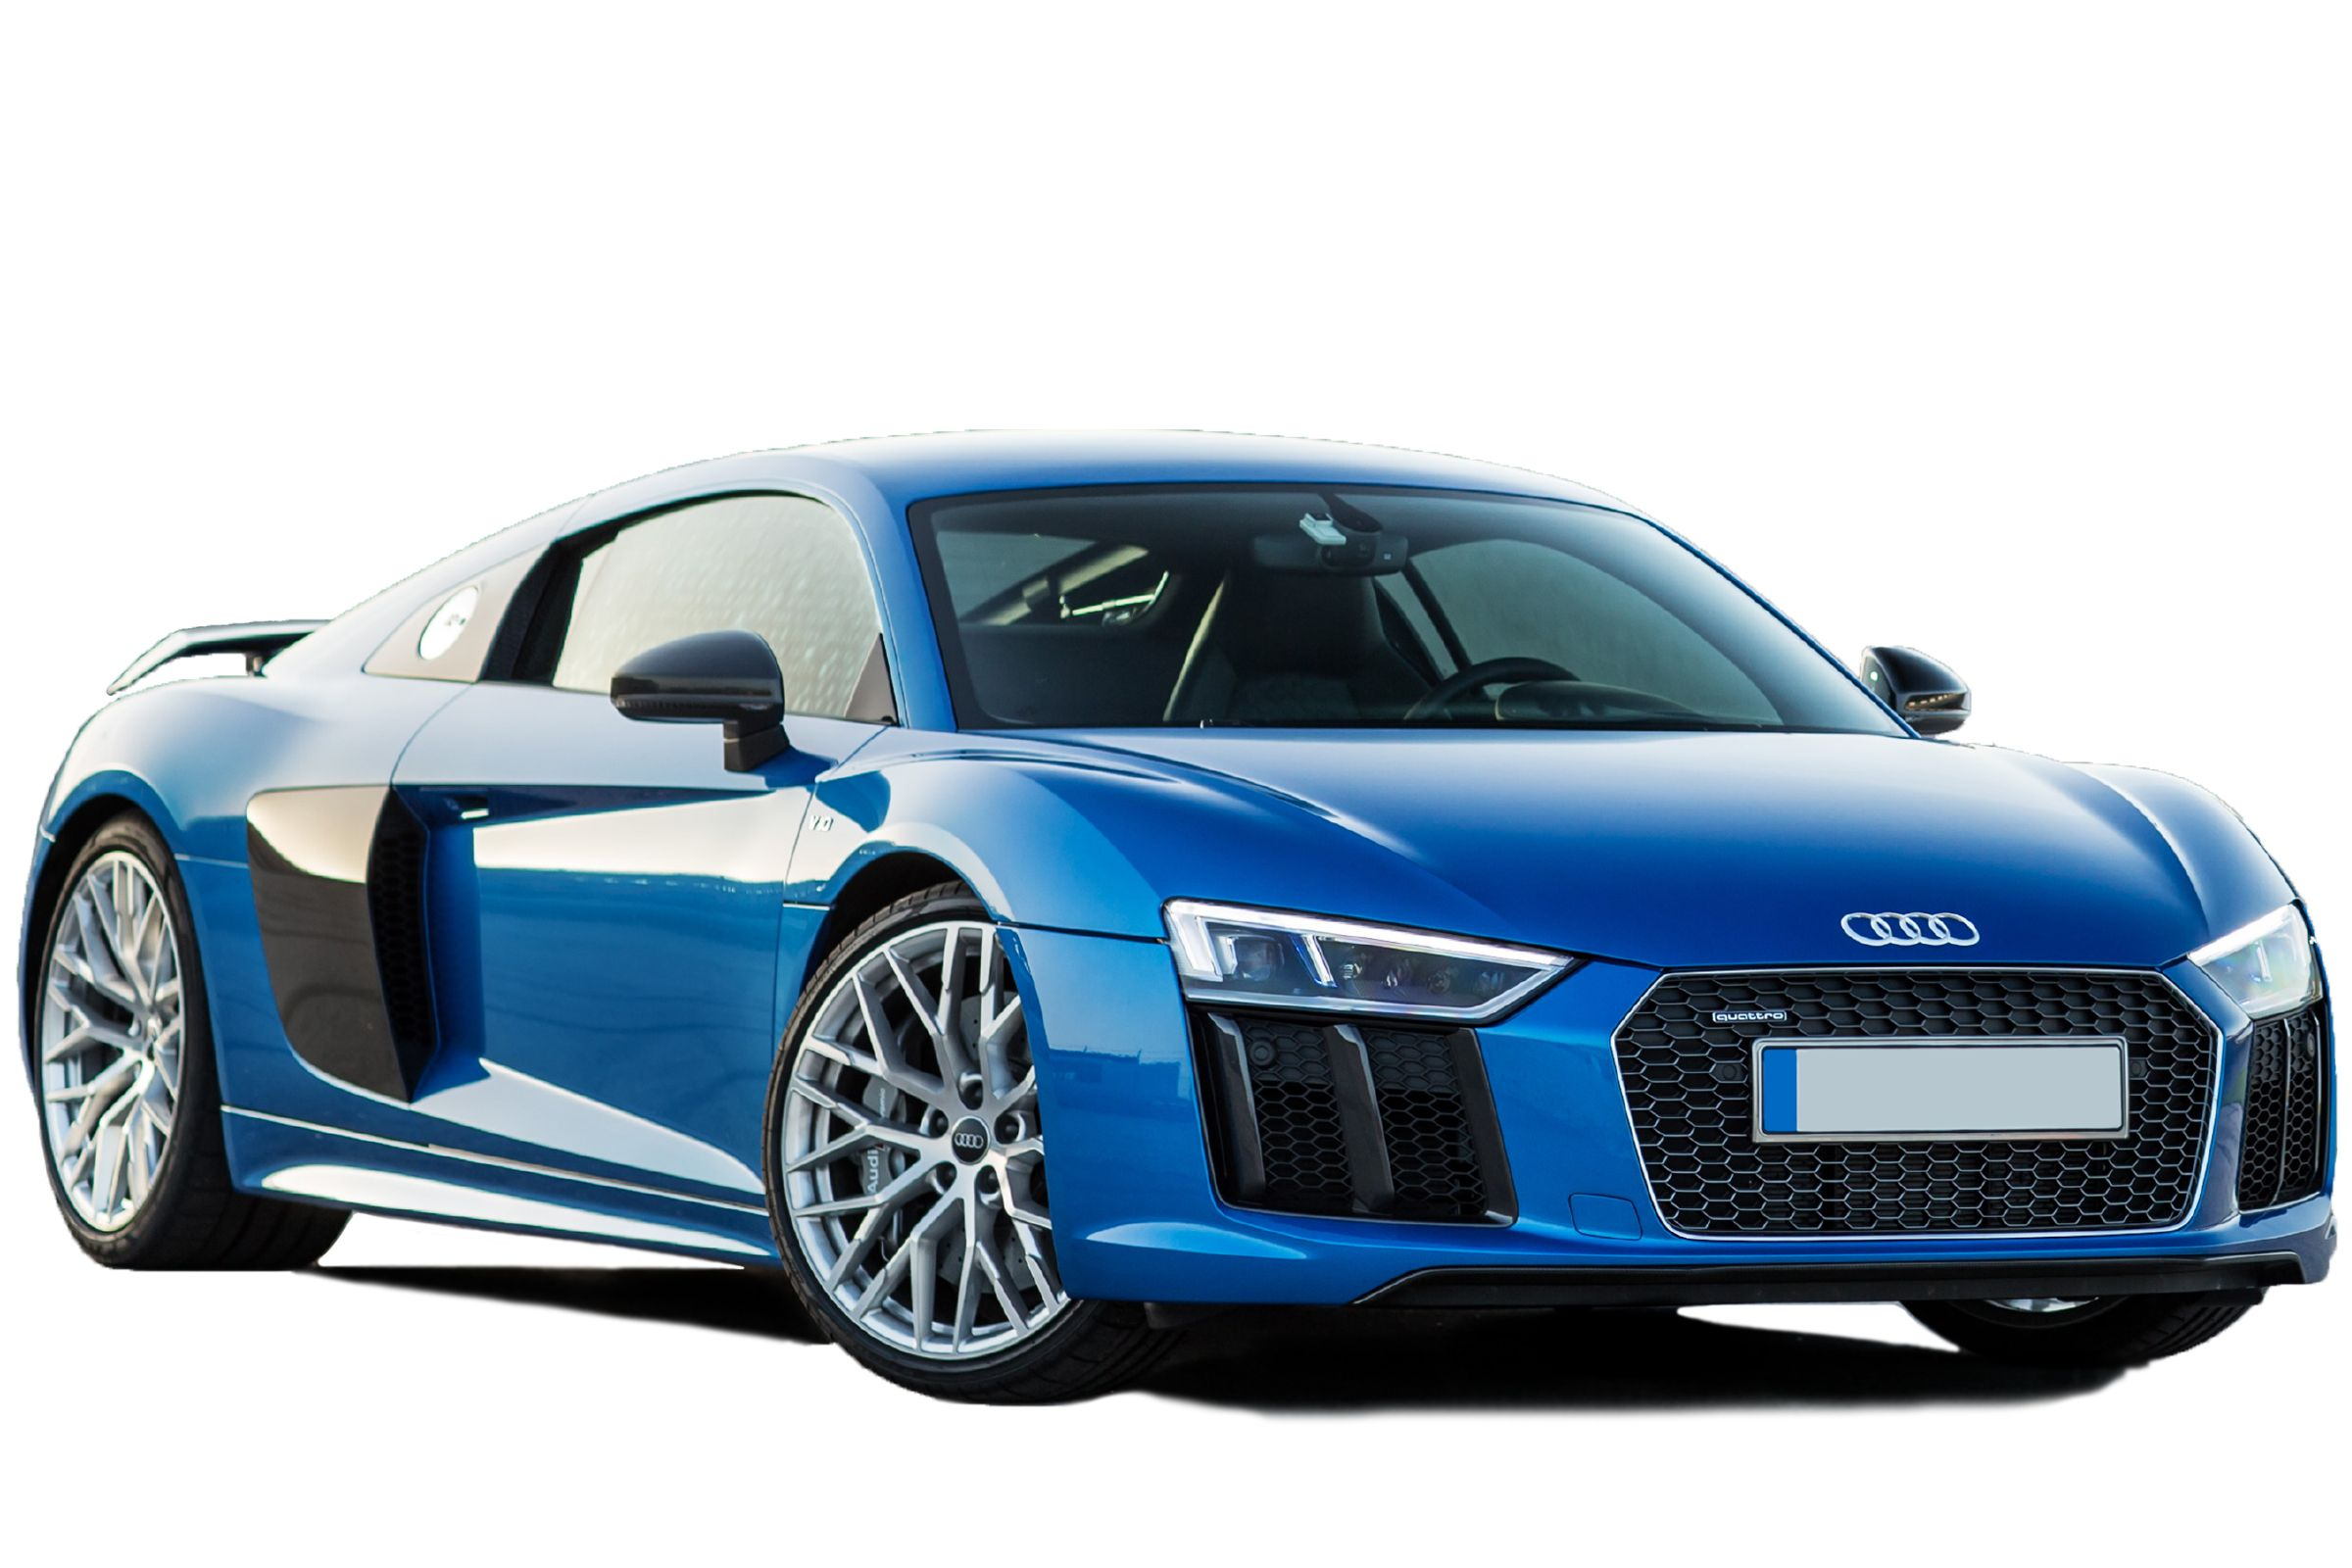 Blue Sports Car Wallpapers Top Free Blue Sports Car Backgrounds